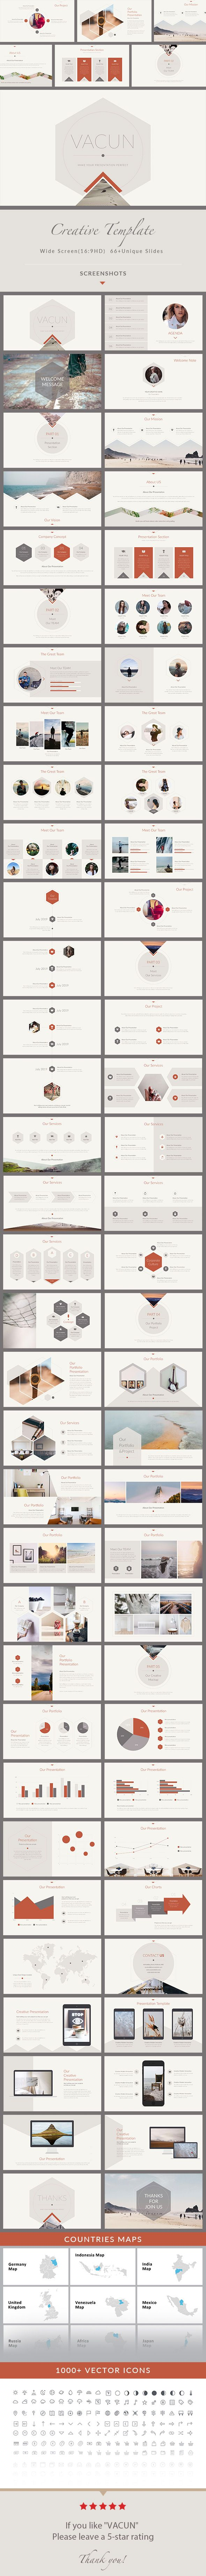 3126 best powerpoint templates from 4$ images on pinterest | food, Modern powerpoint